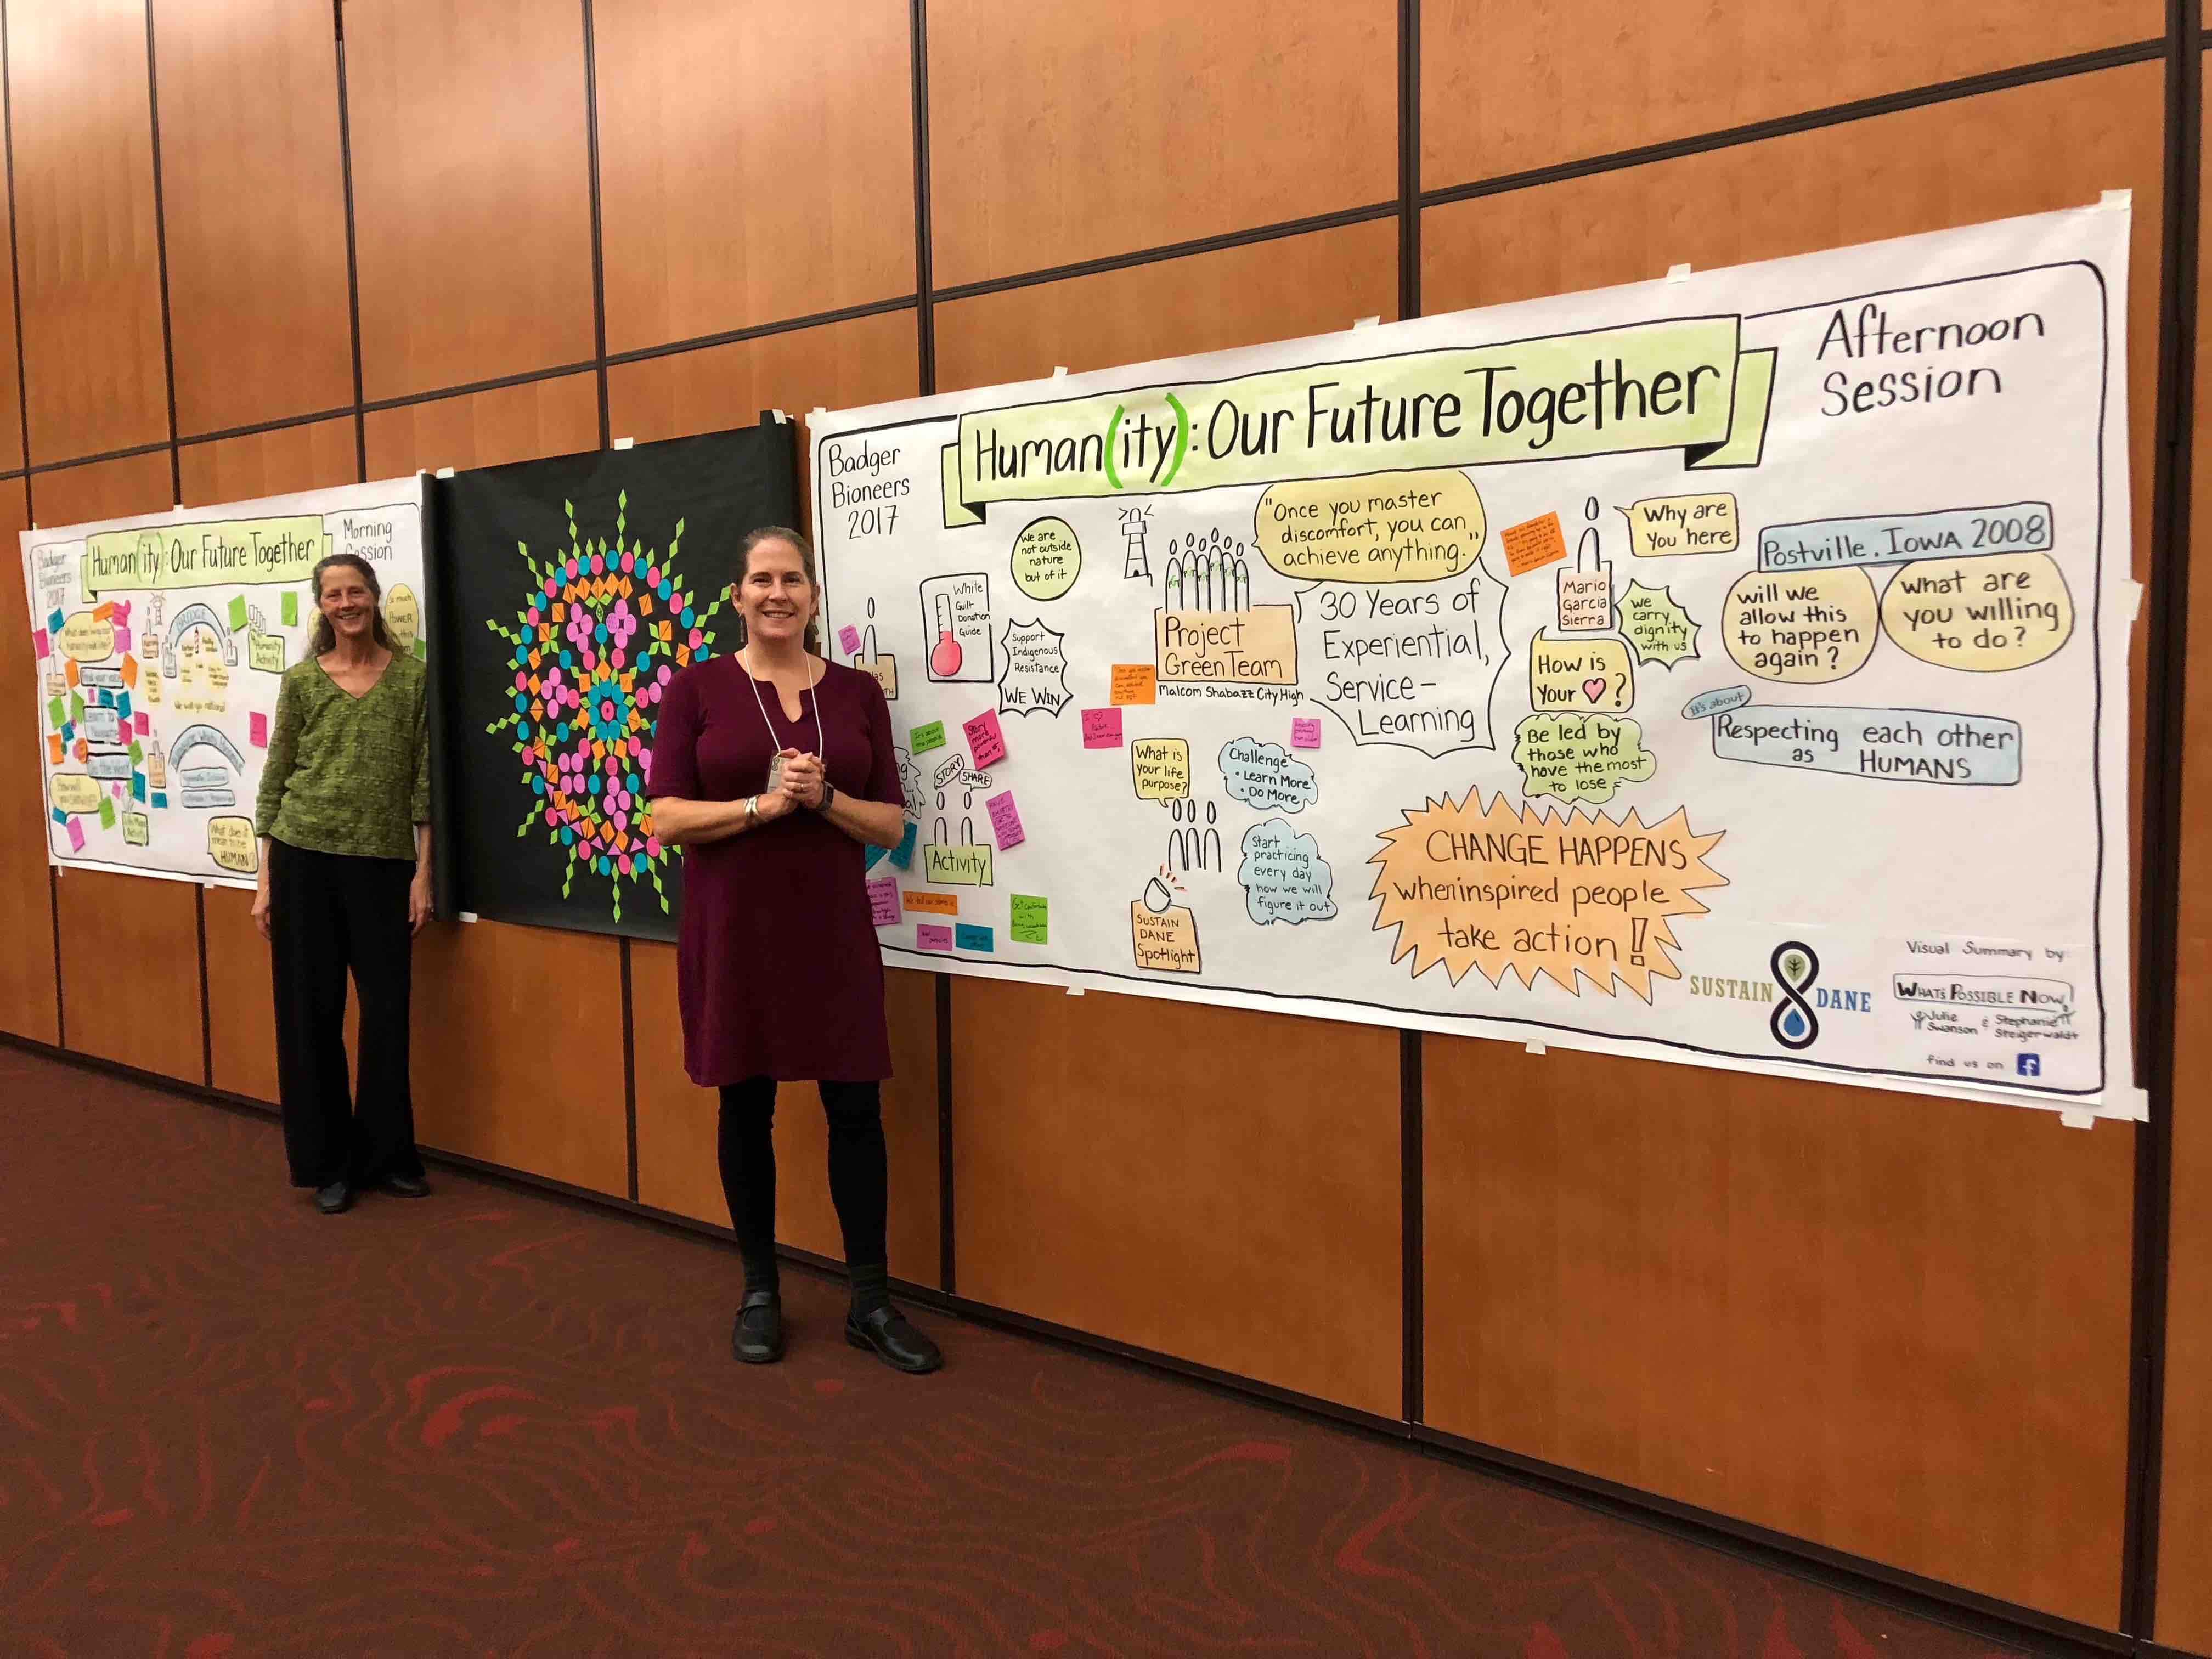 Graphic Recording/Engagement by Stephanie Steigerwaldt and Julie Swanson for Badger Bioneers 2017